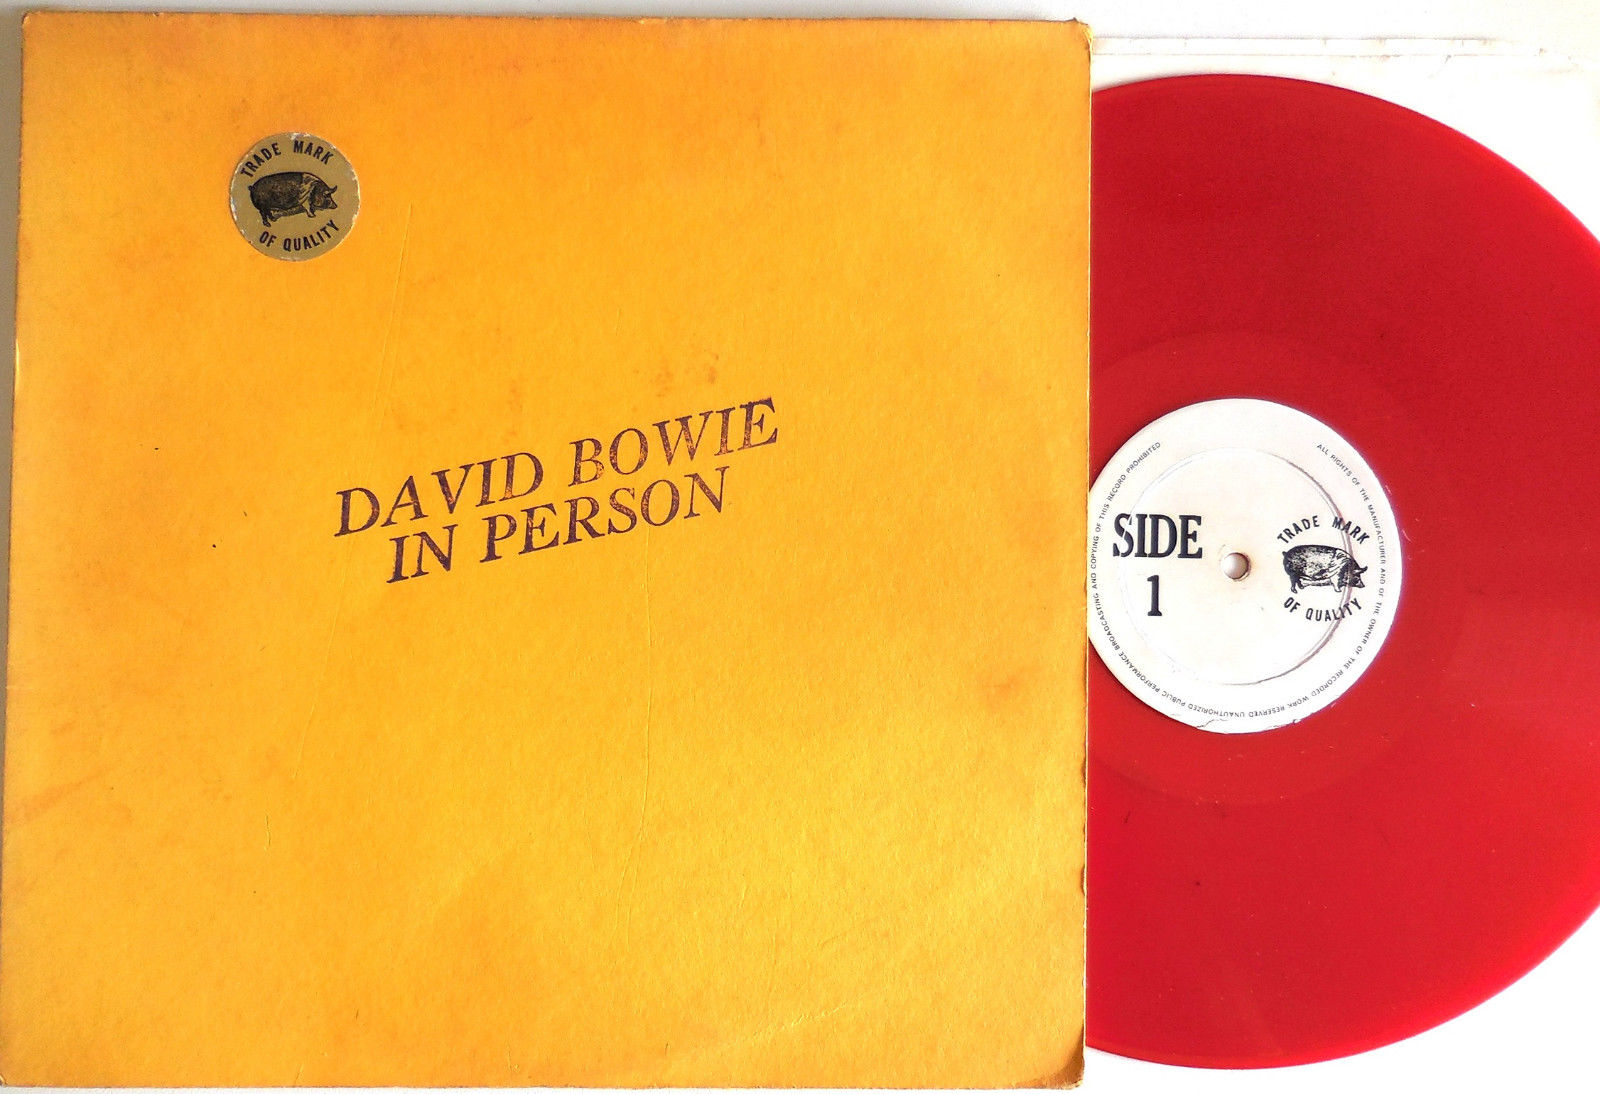 DAVID BOWIE - IN PERSON very rare TMOQ live LP RED VINYL